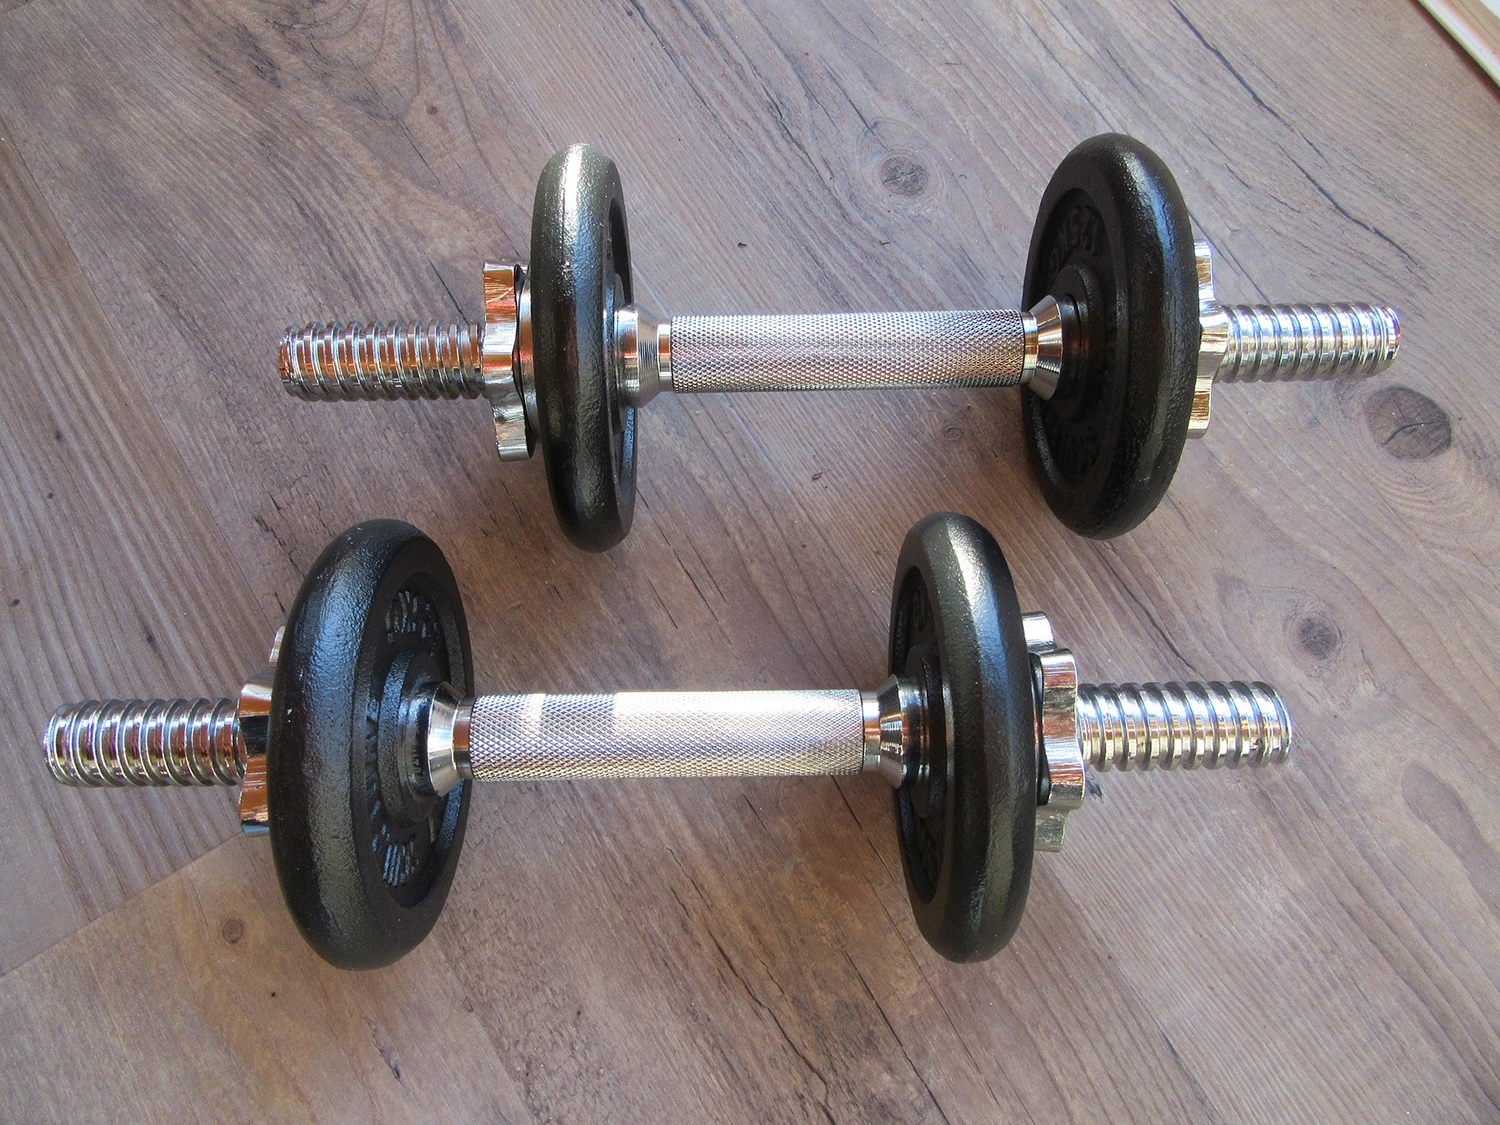 A Pair of Dumbbells Placed on Wooden Floor